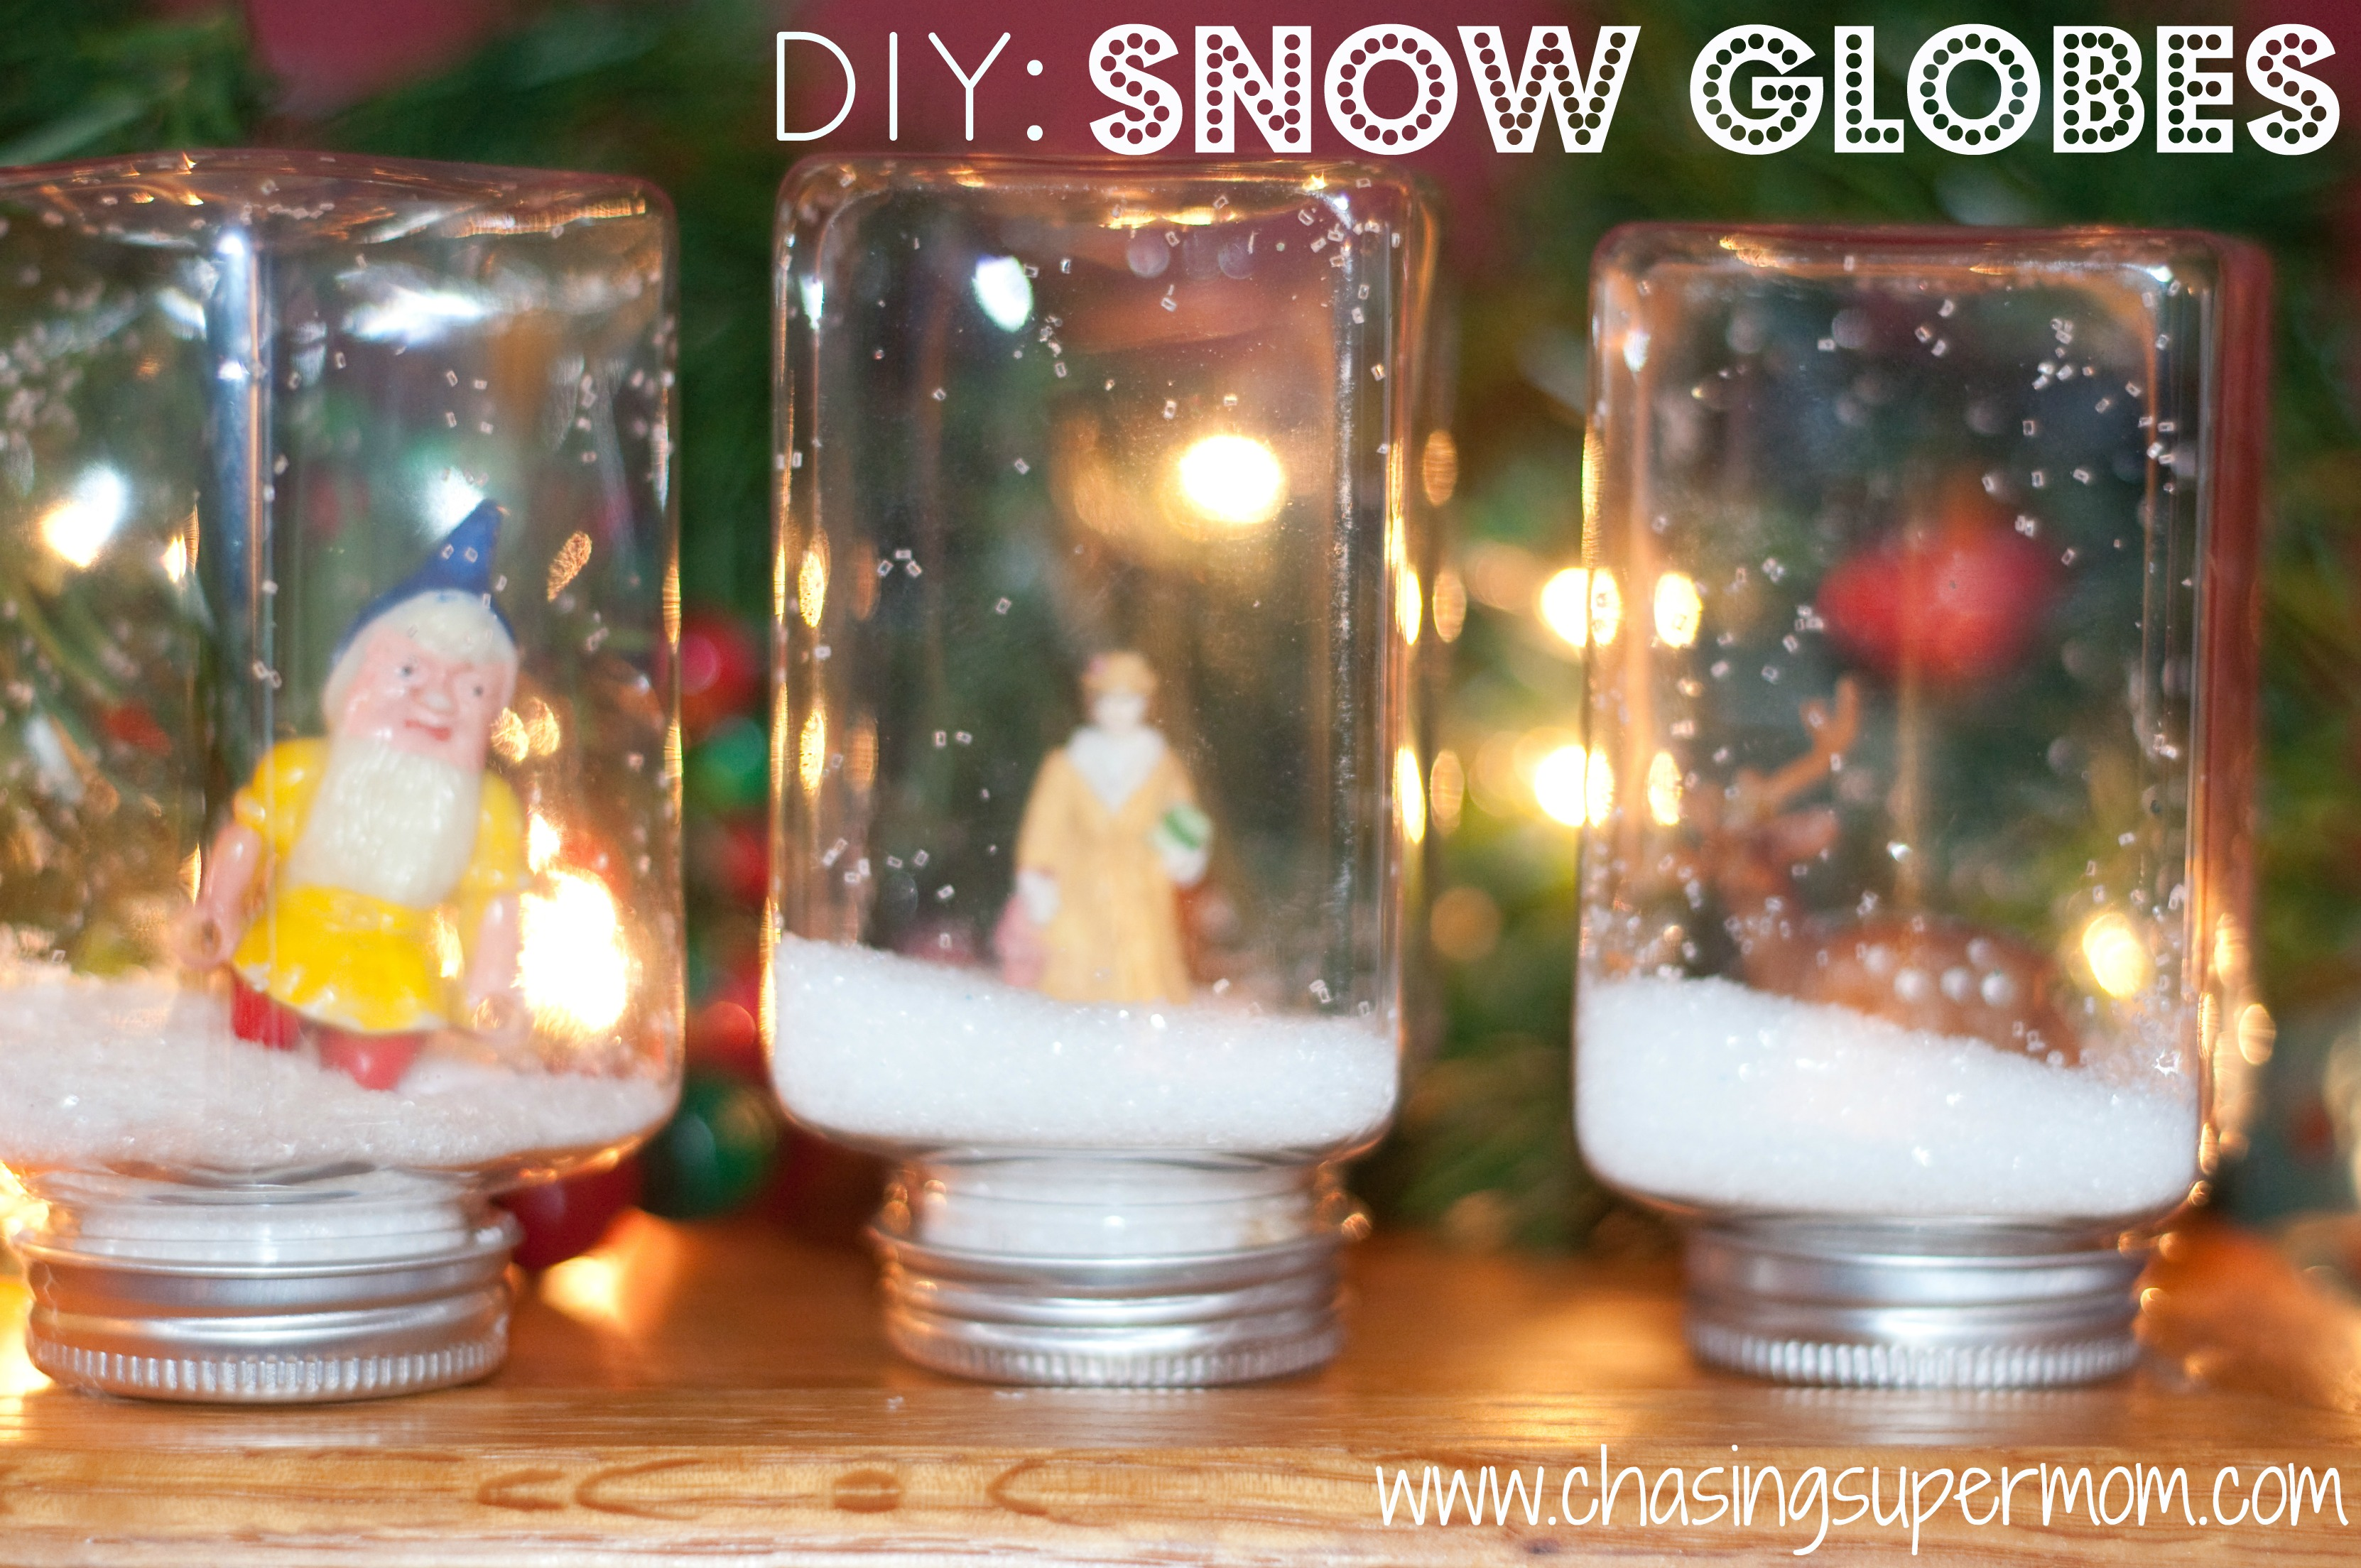 DIY: Snow Globes + How to Make Your Own Snow Globe